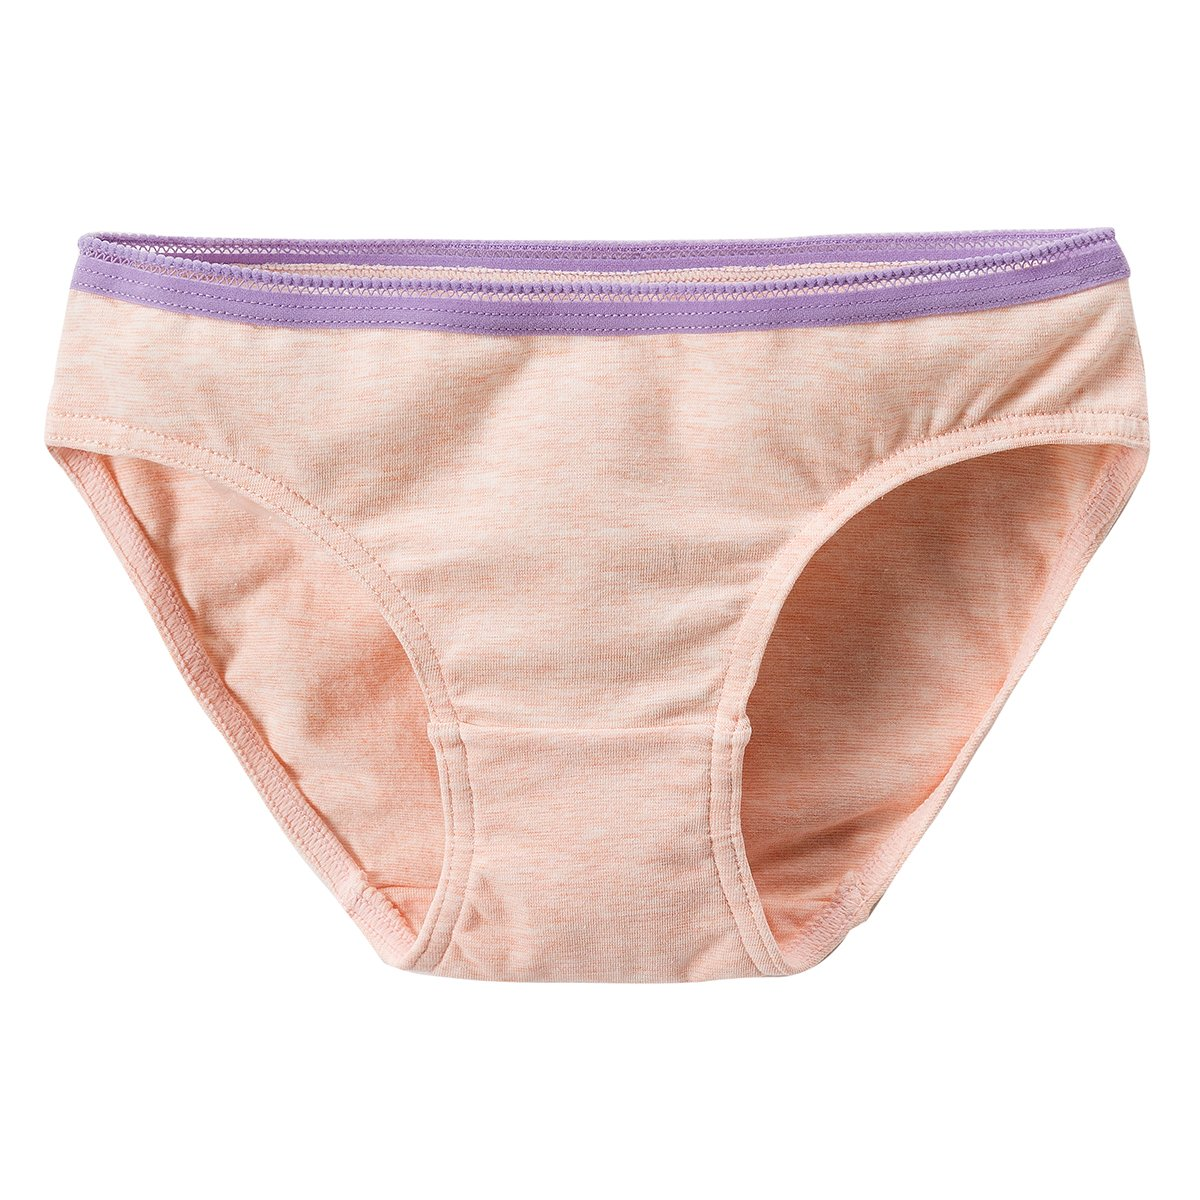 MAMABIBI Kids Solid Hipster Big Girls Colorful Texture Cotton Underwear 5 of Pack Colorful Textures-pink/Orange/Sky-blue L 10-12YRS by MAMABIBI (Image #2)